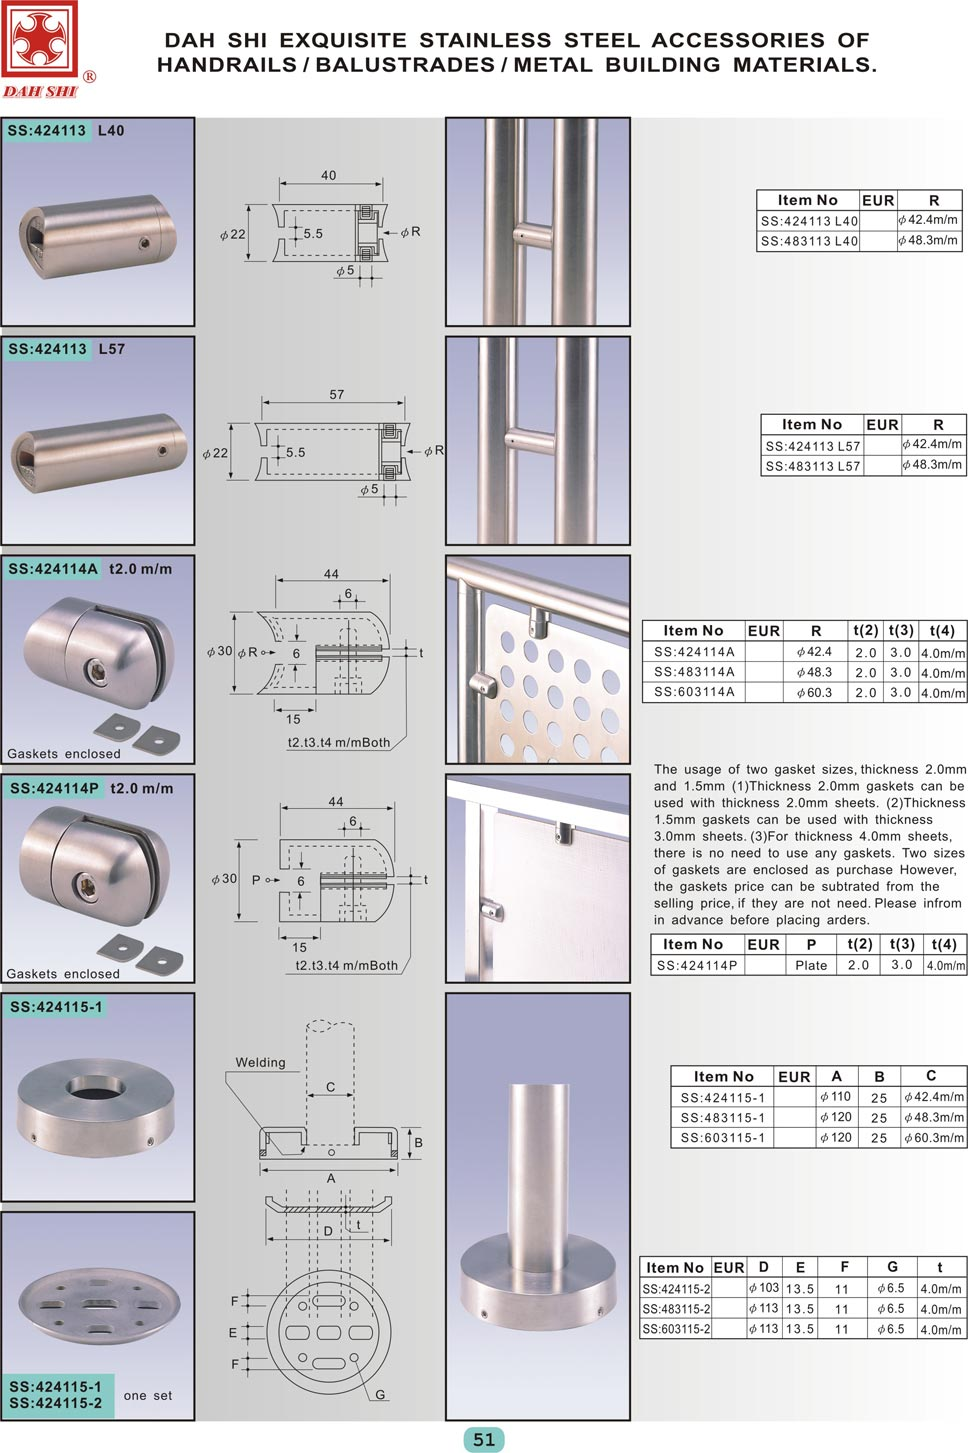 stainless steel accessories of handrails, balustrades, metal building materials